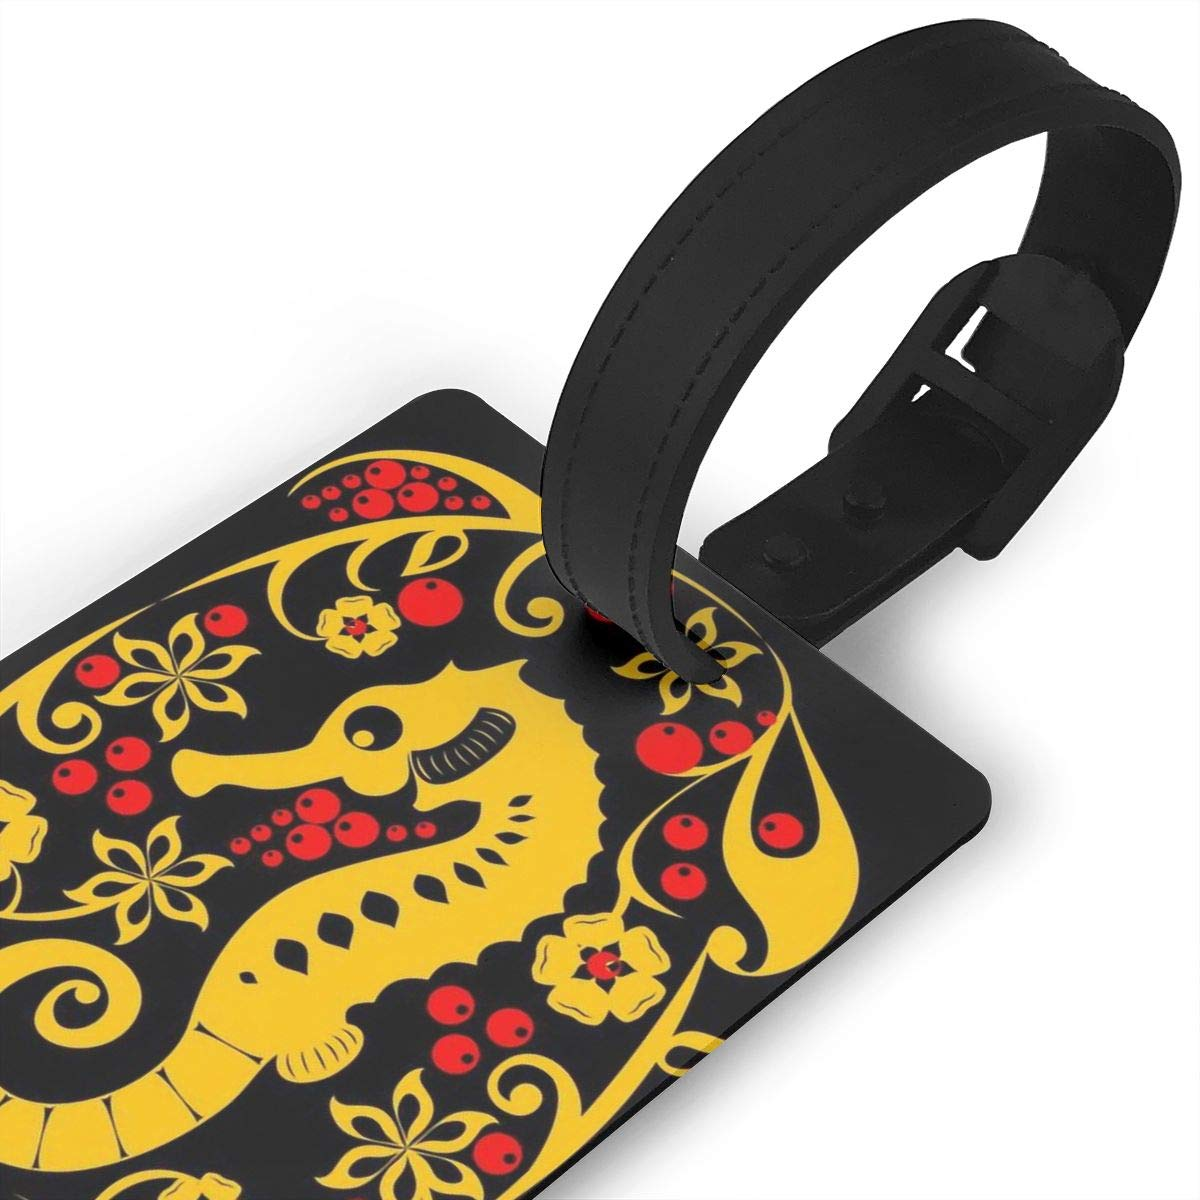 2 Pack Luggage Tags Sea Horse Handbag Tag For Travel Tags Accessories